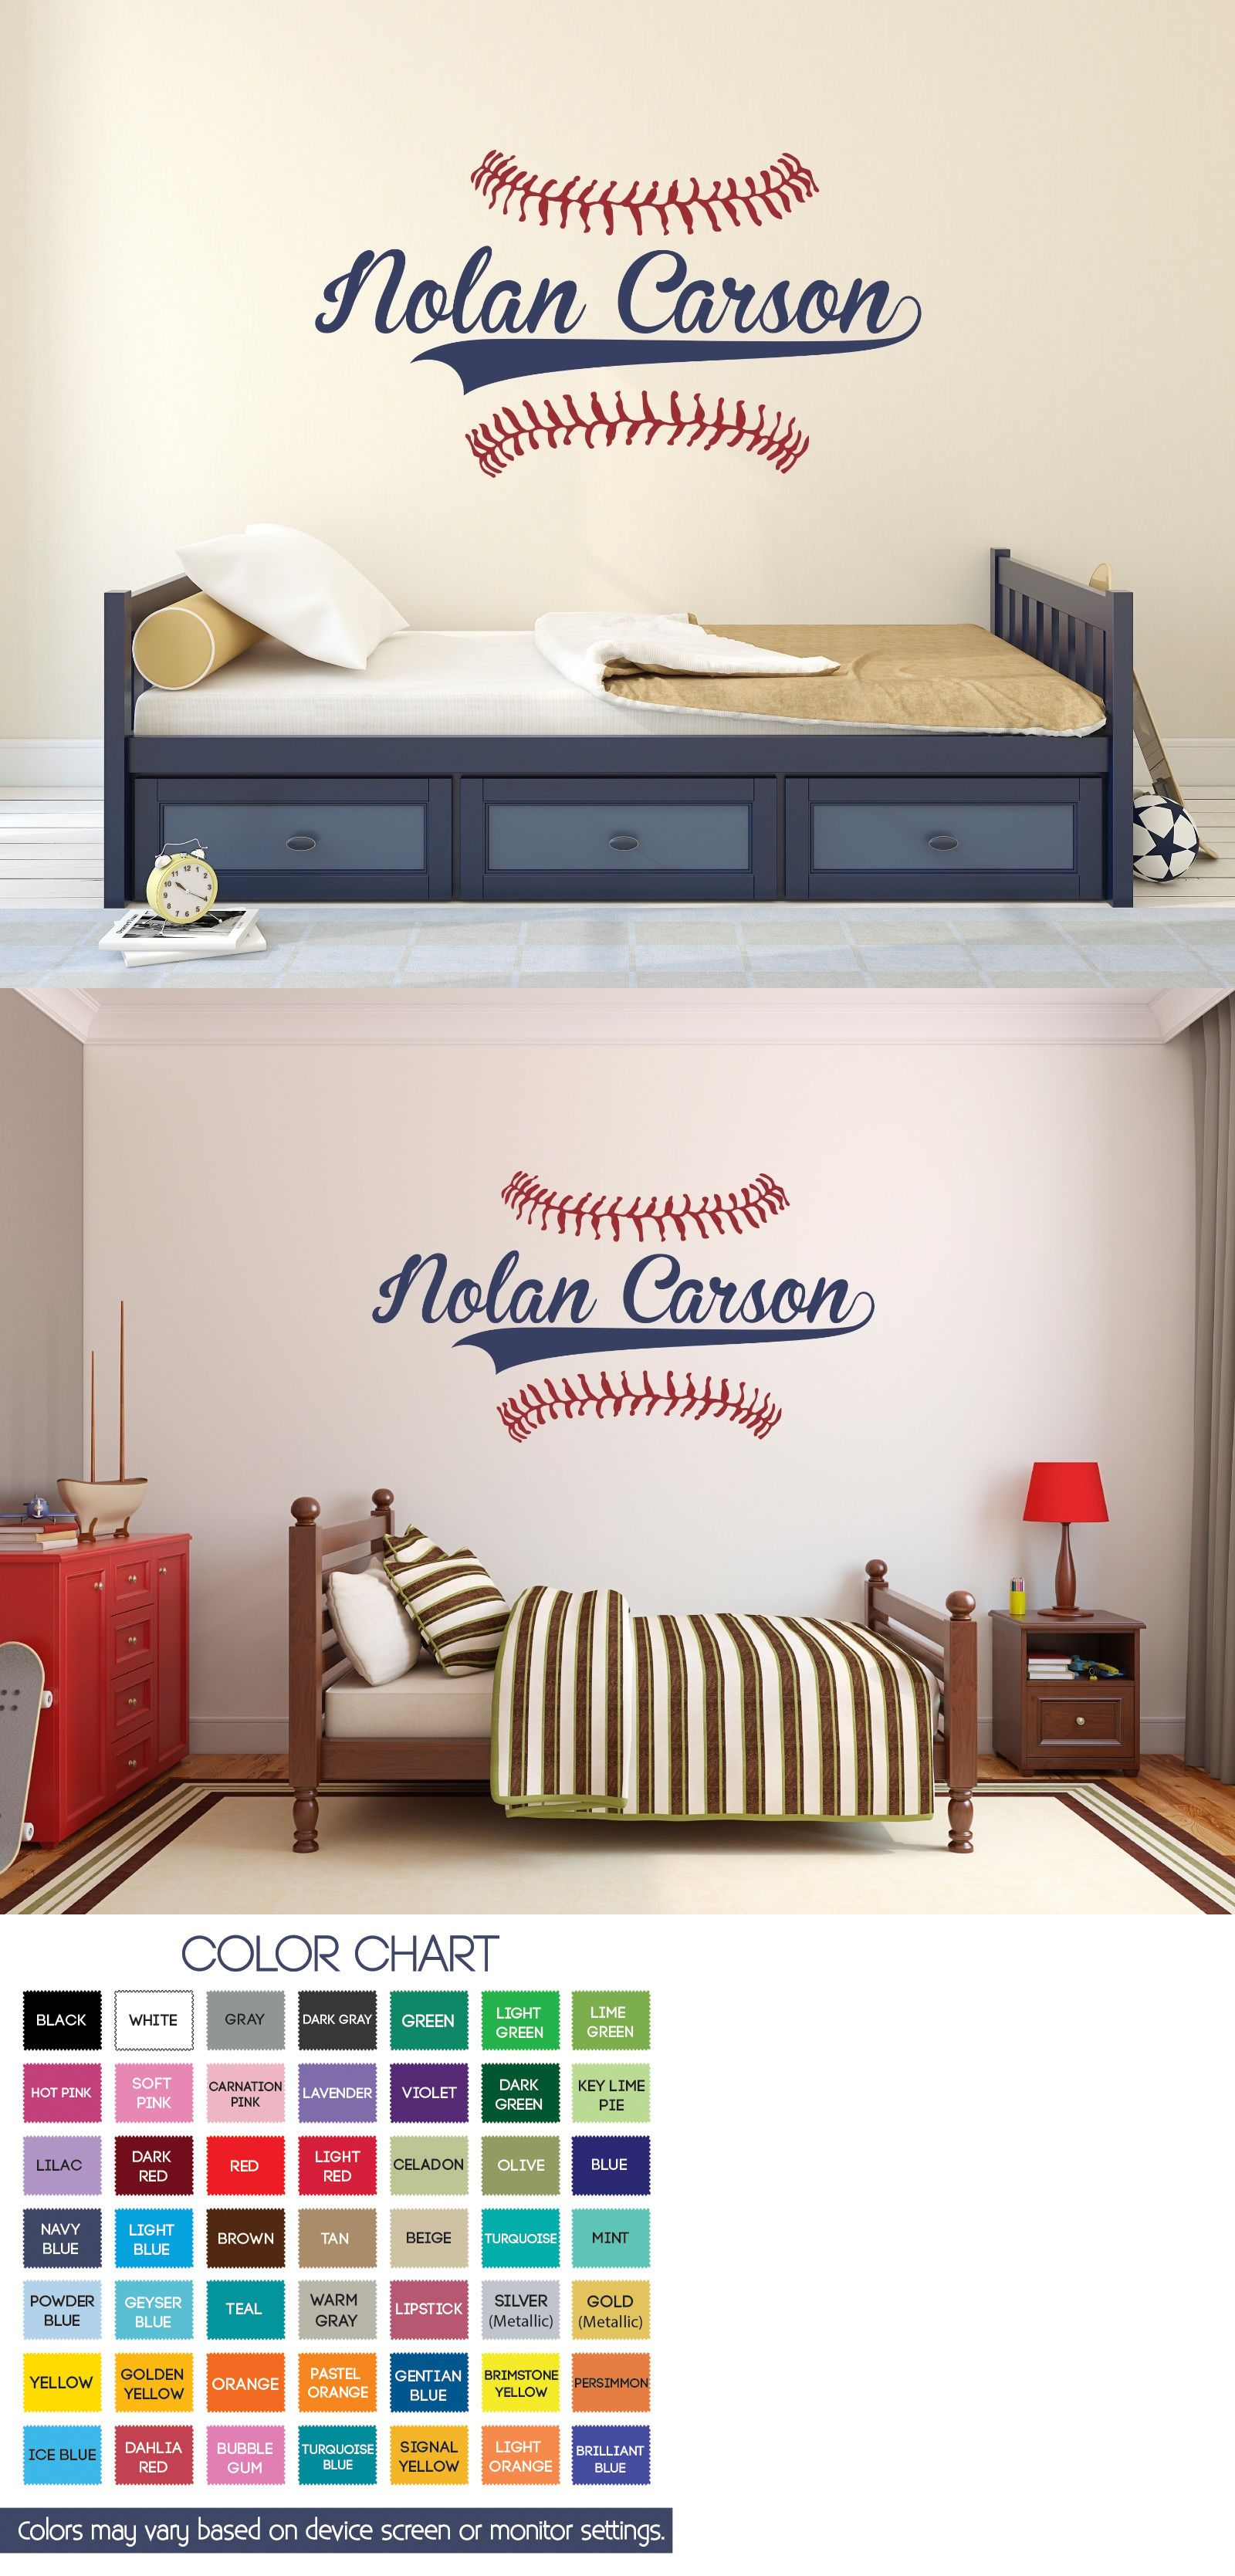 Decals Stickers And Vinyl Art 159889 Custom Name Baseball Wall Decal Bedroom Boys